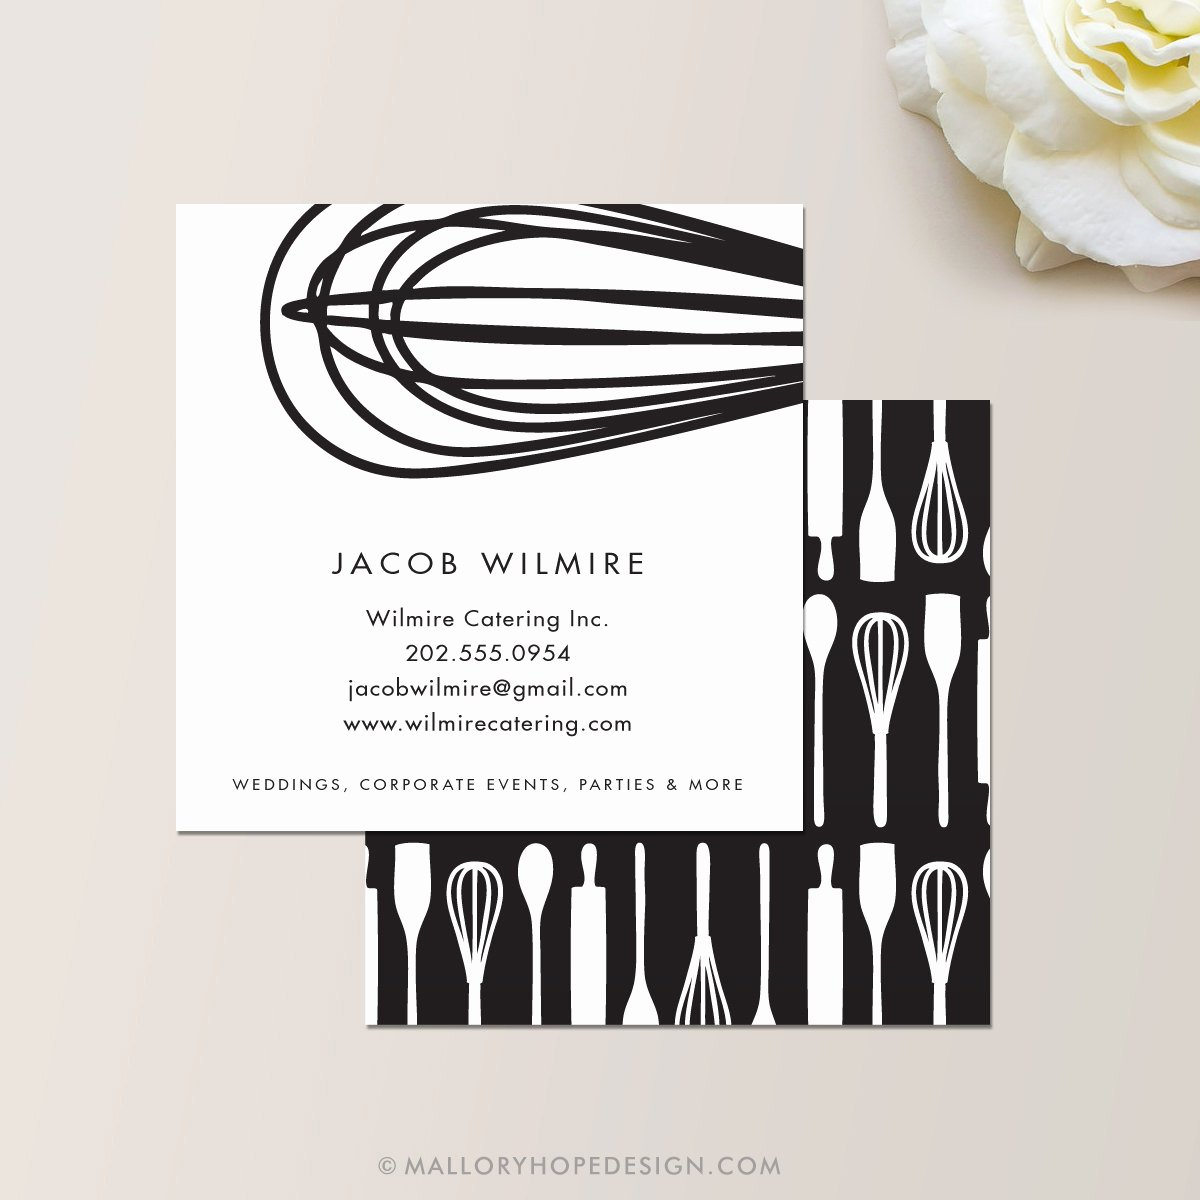 Catering Business Card Ideas Luxury Baker or Catering Chef Square Business Card Calling Card